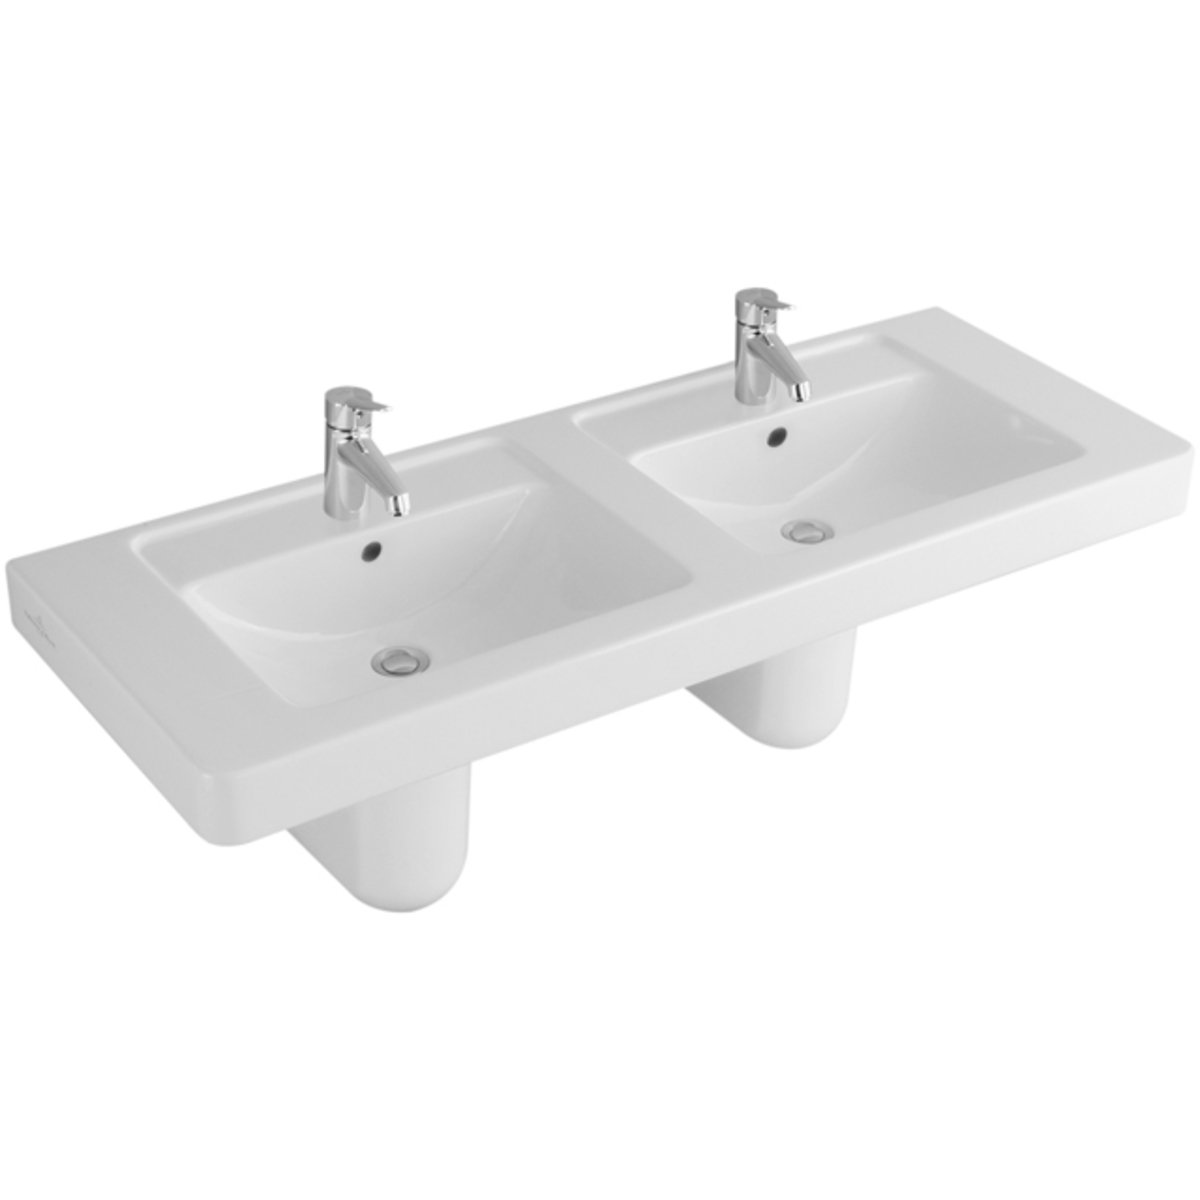 villeroy et boch subway cache siphon pour lavabo ceramic blanc 726400r1. Black Bedroom Furniture Sets. Home Design Ideas